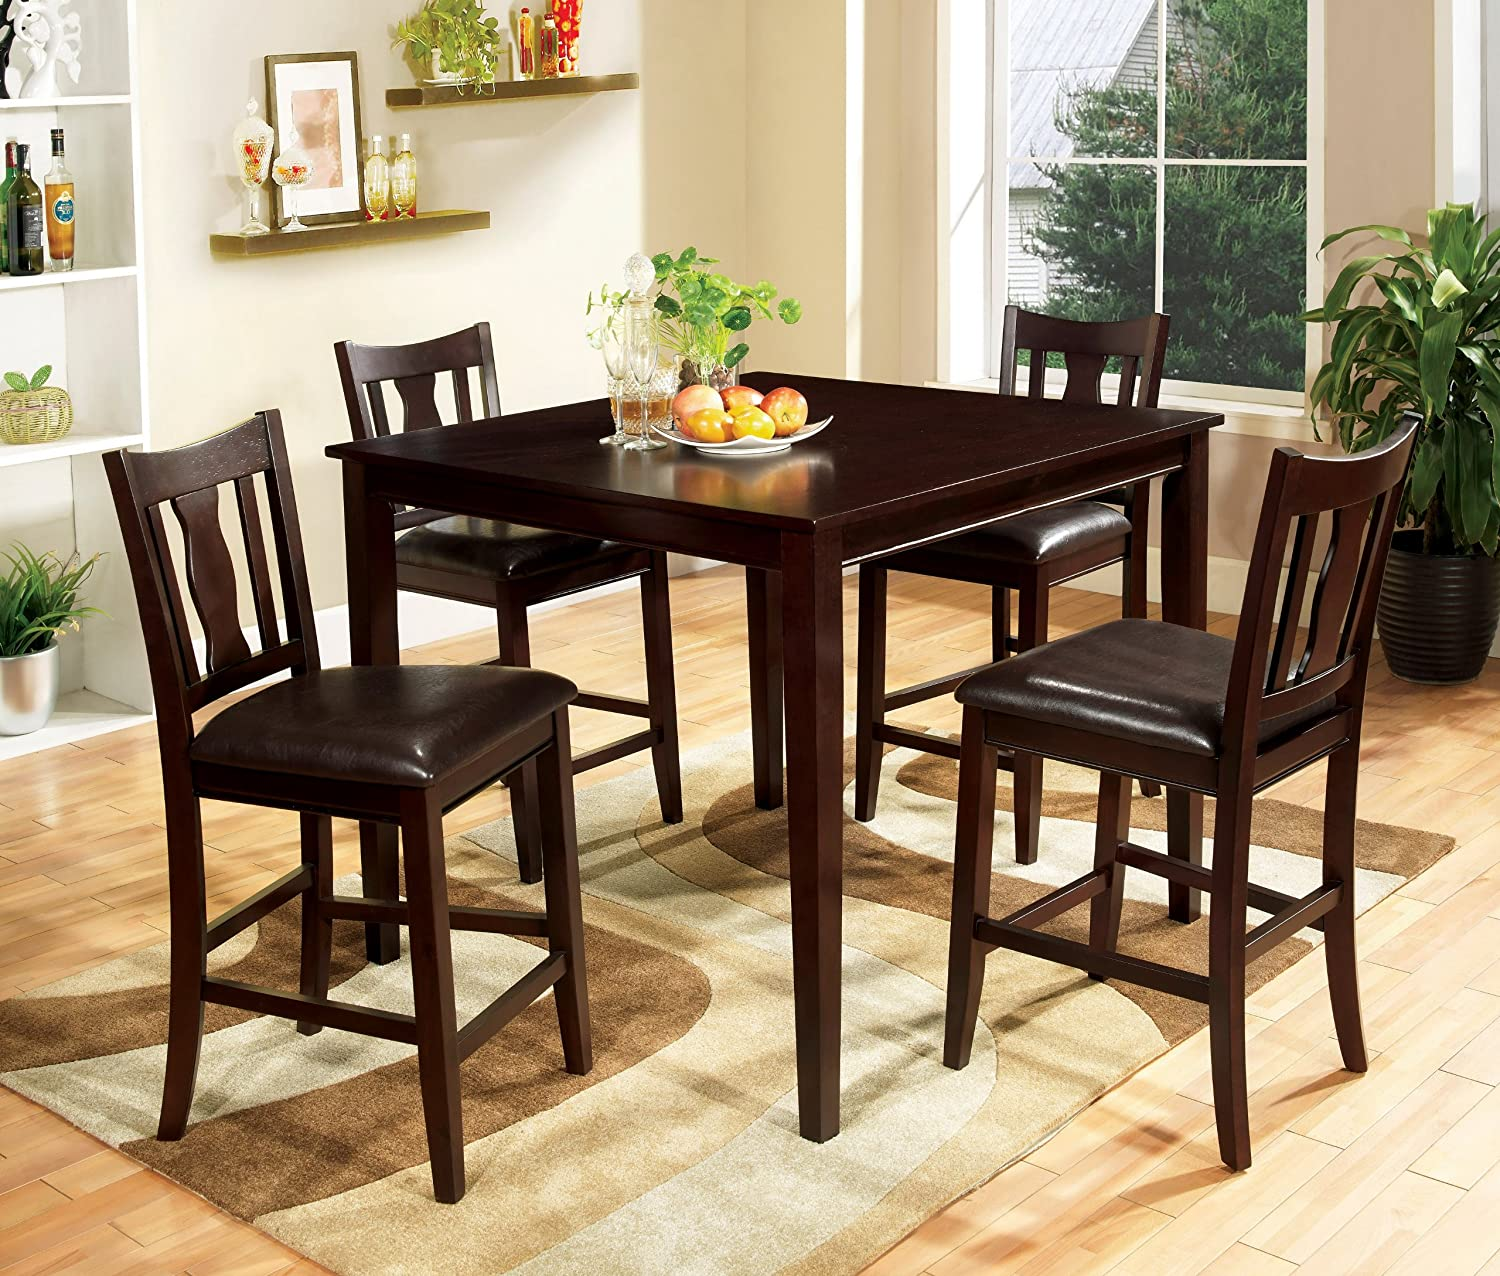 amazoncom furniture of america marion 5piece solid wood counter height dining set espresso table u0026 chair sets